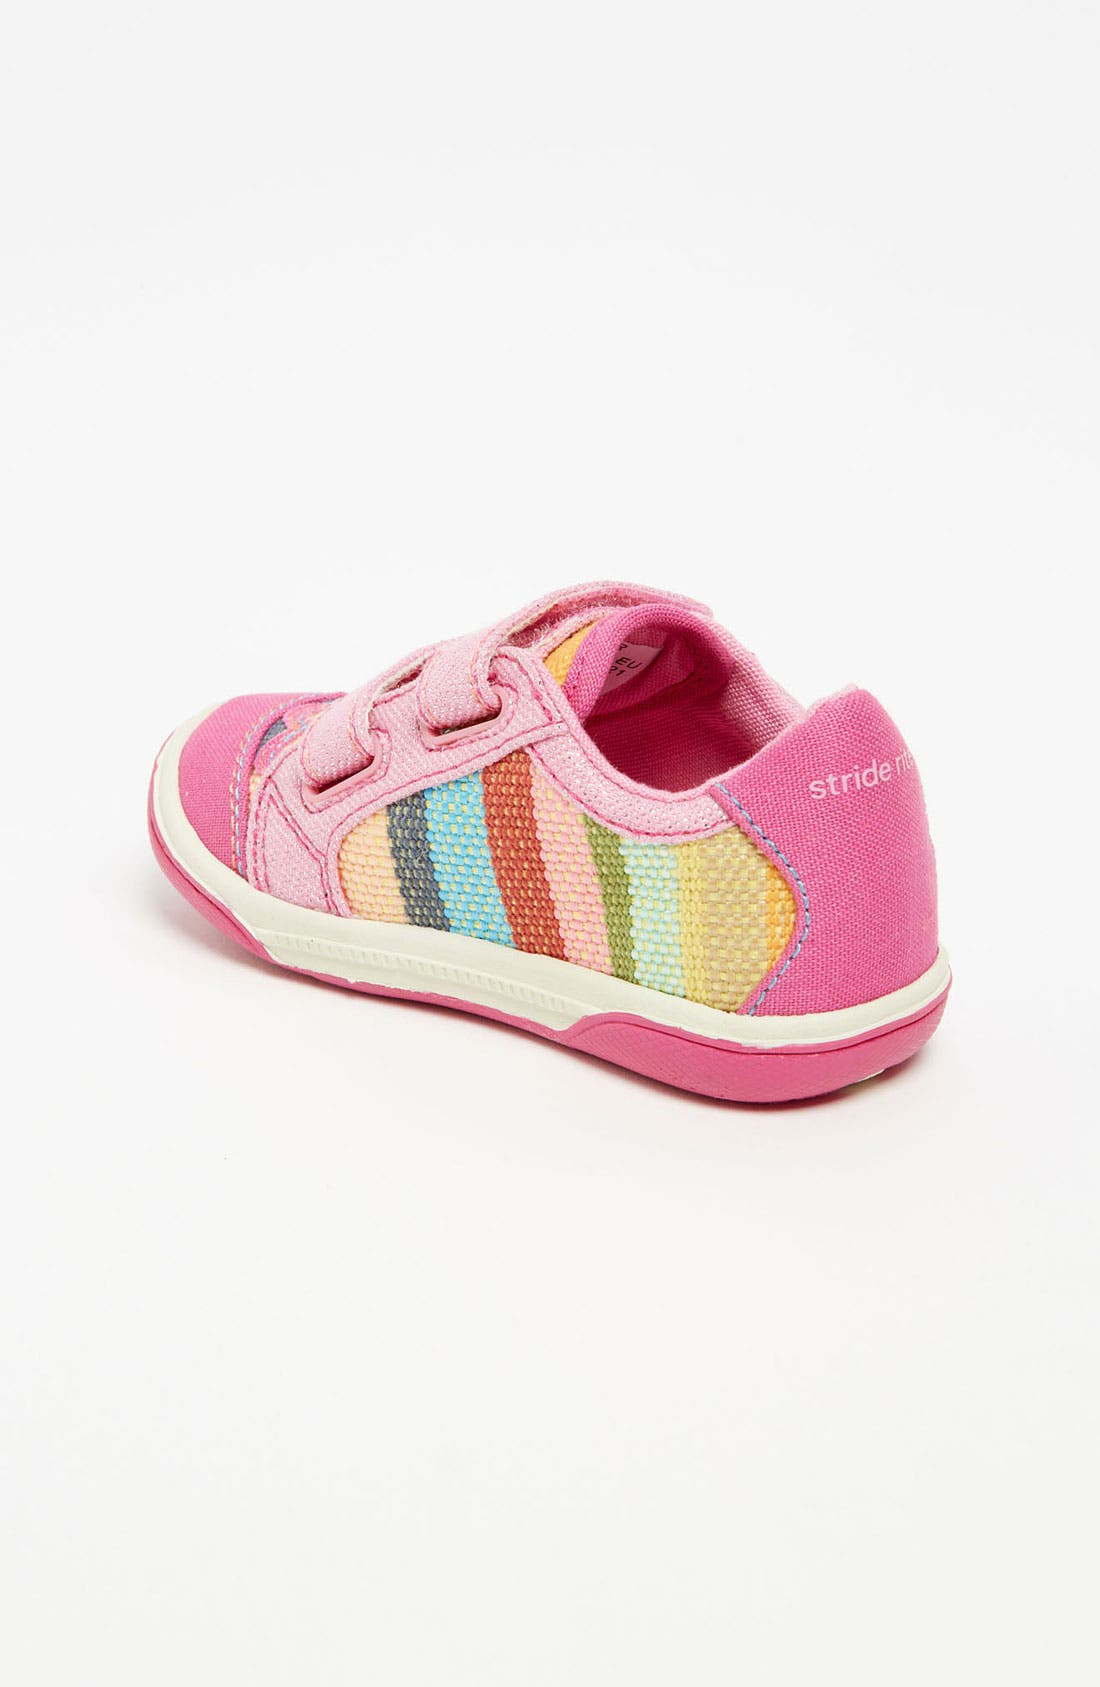 Alternate Image 2  - Stride Rite 'Ryder' Sneaker (Baby, Walker & Toddler)